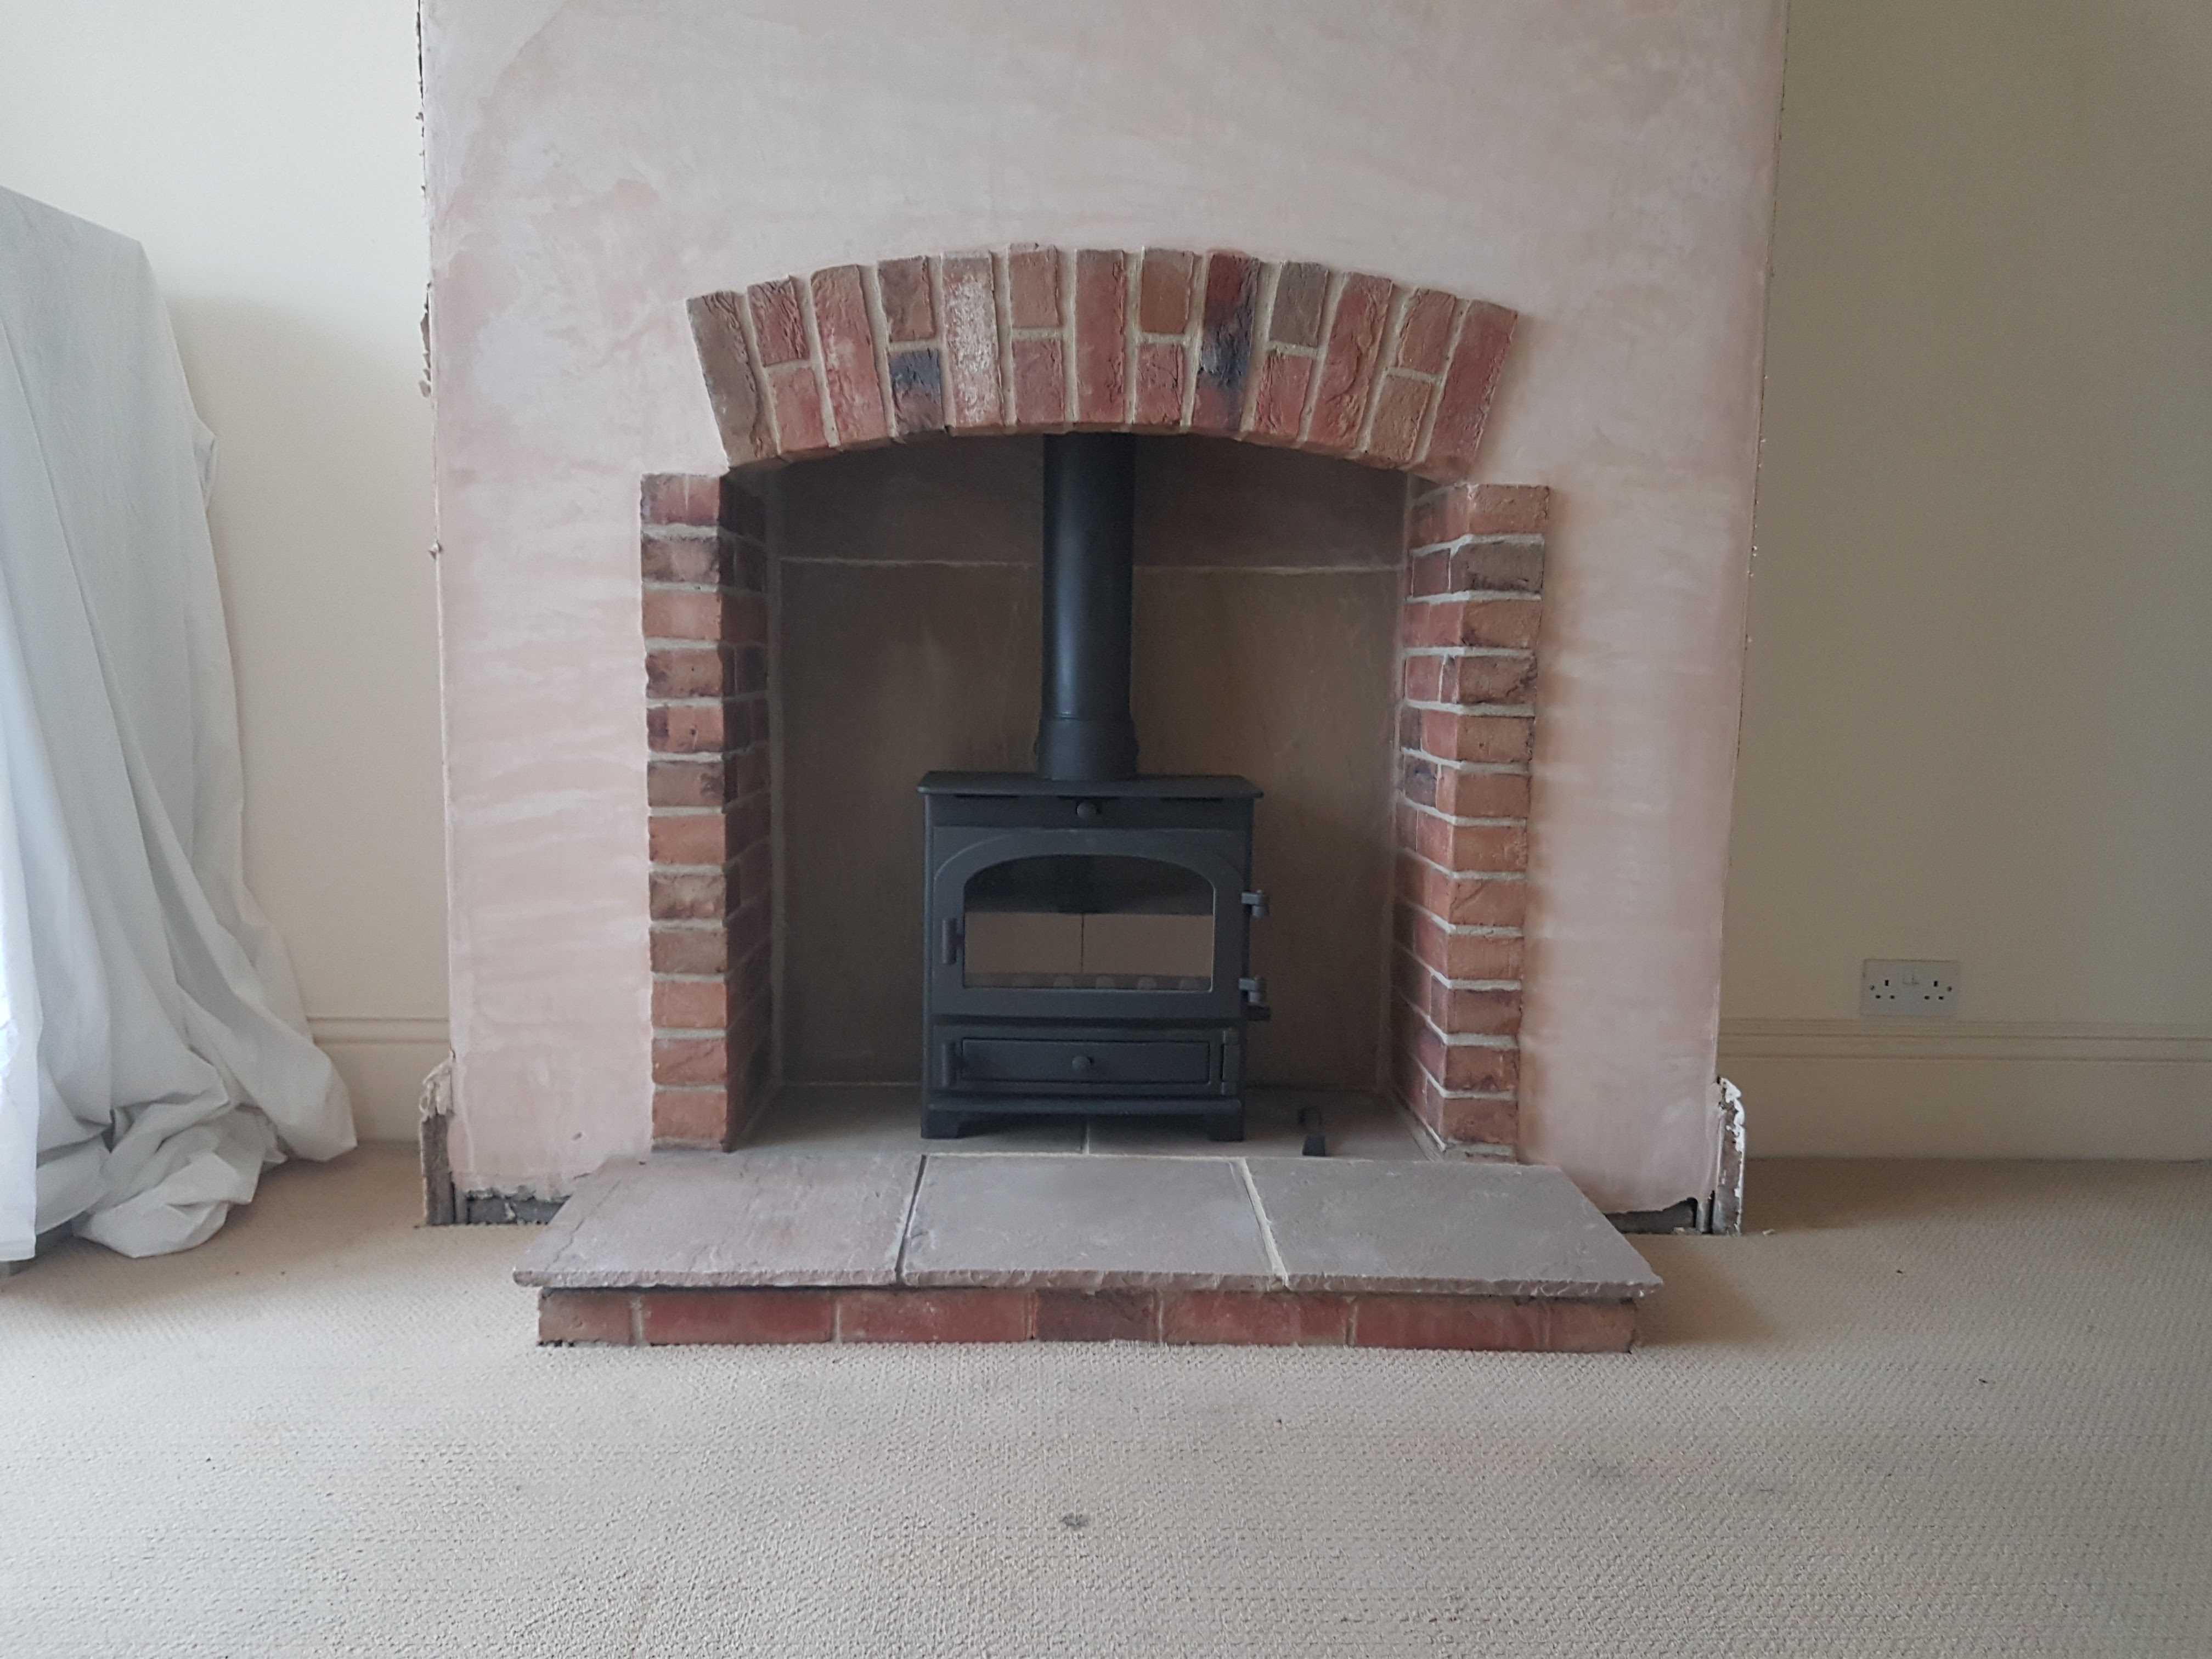 Parkray Derwent on Indian sandstone hearth